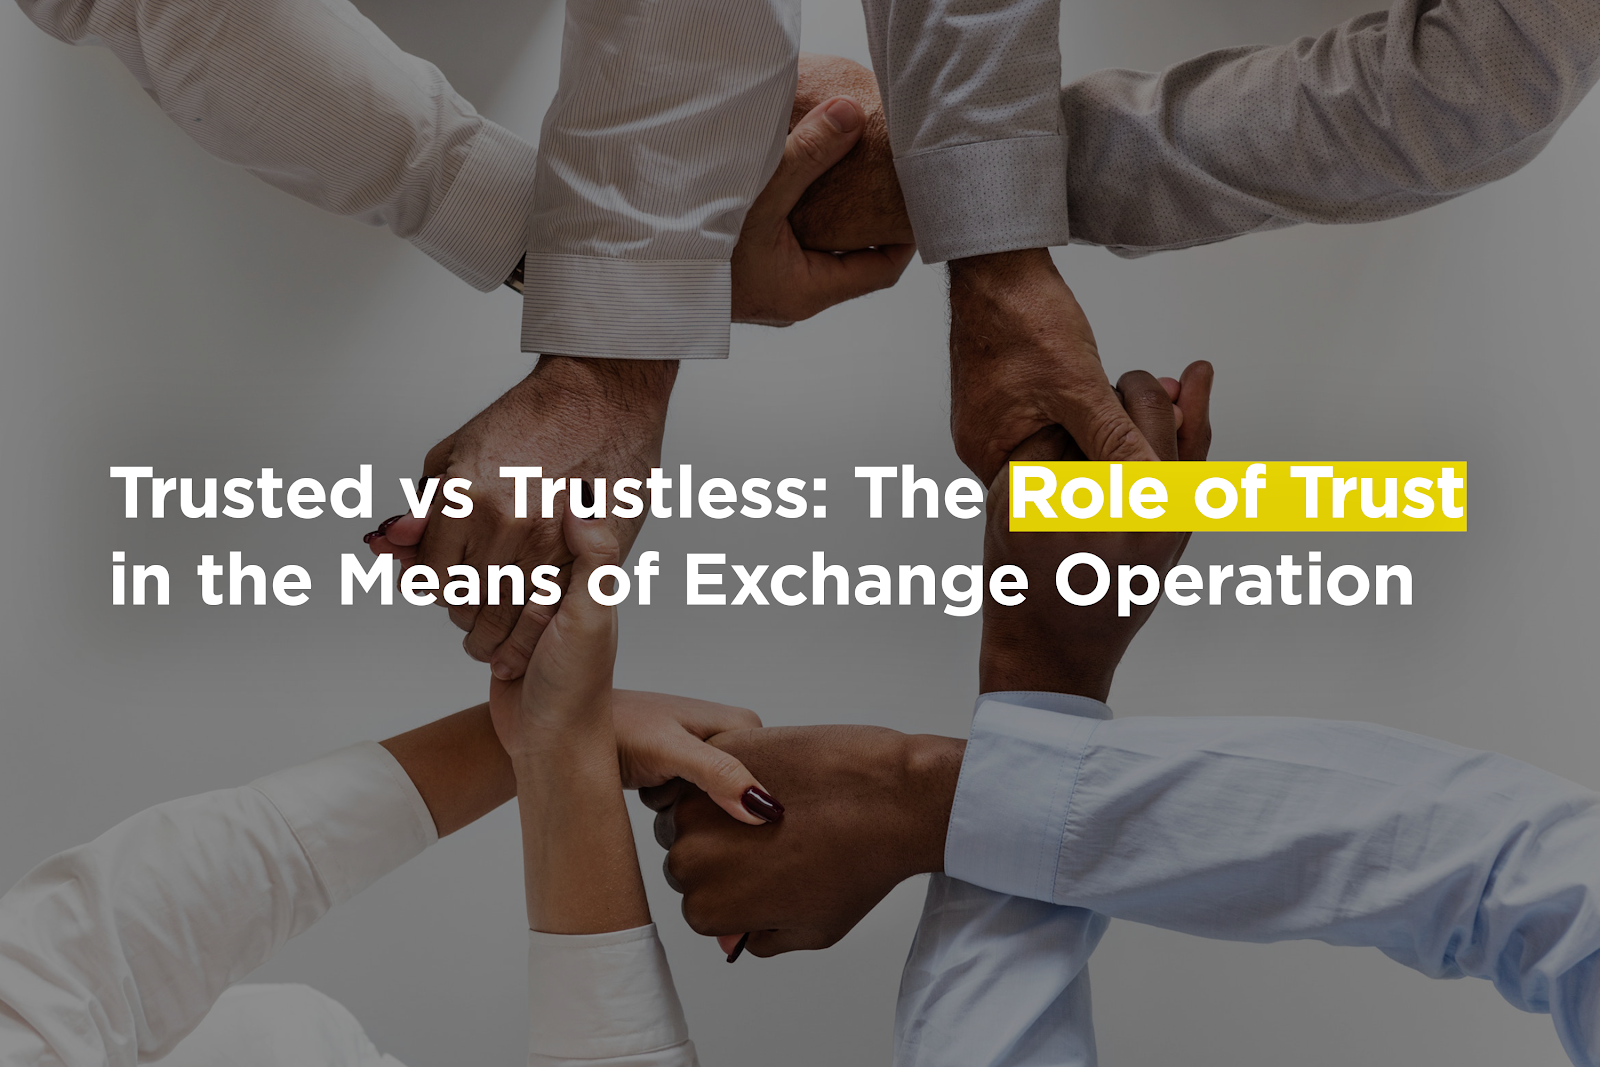 /trusted-vs-trustless-the-role-of-trust-in-the-operation-of-means-of-exchange-2215ea9ba383 feature image